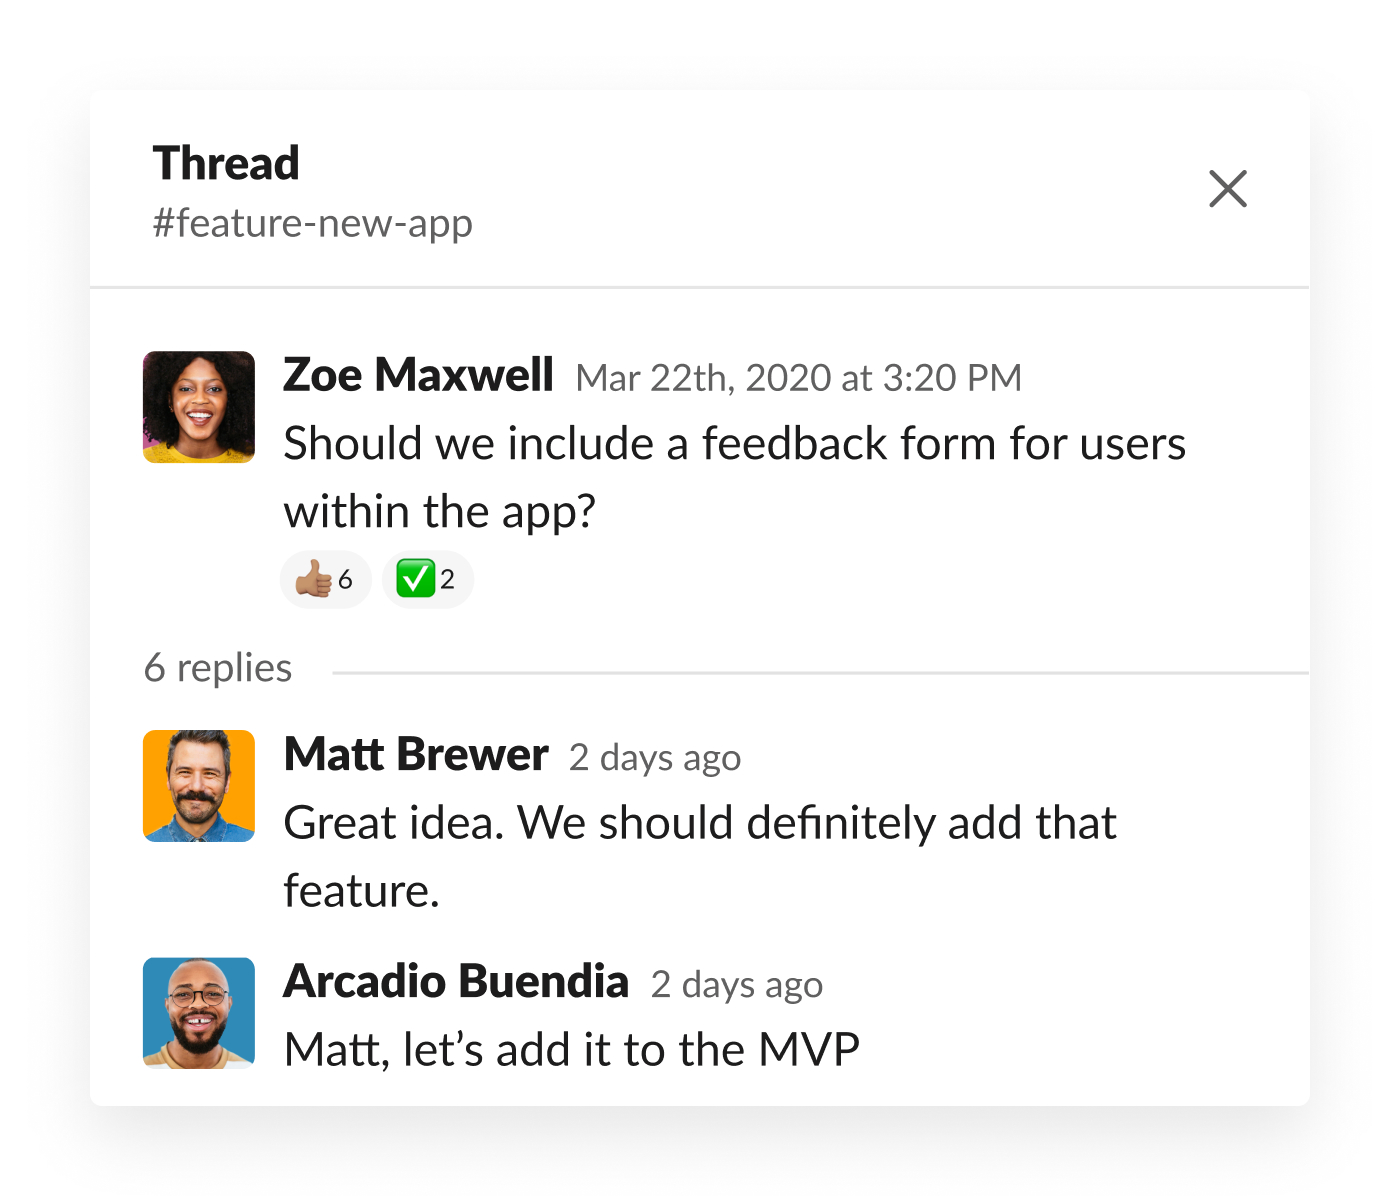 Slack thread discussing feedback form for users in app